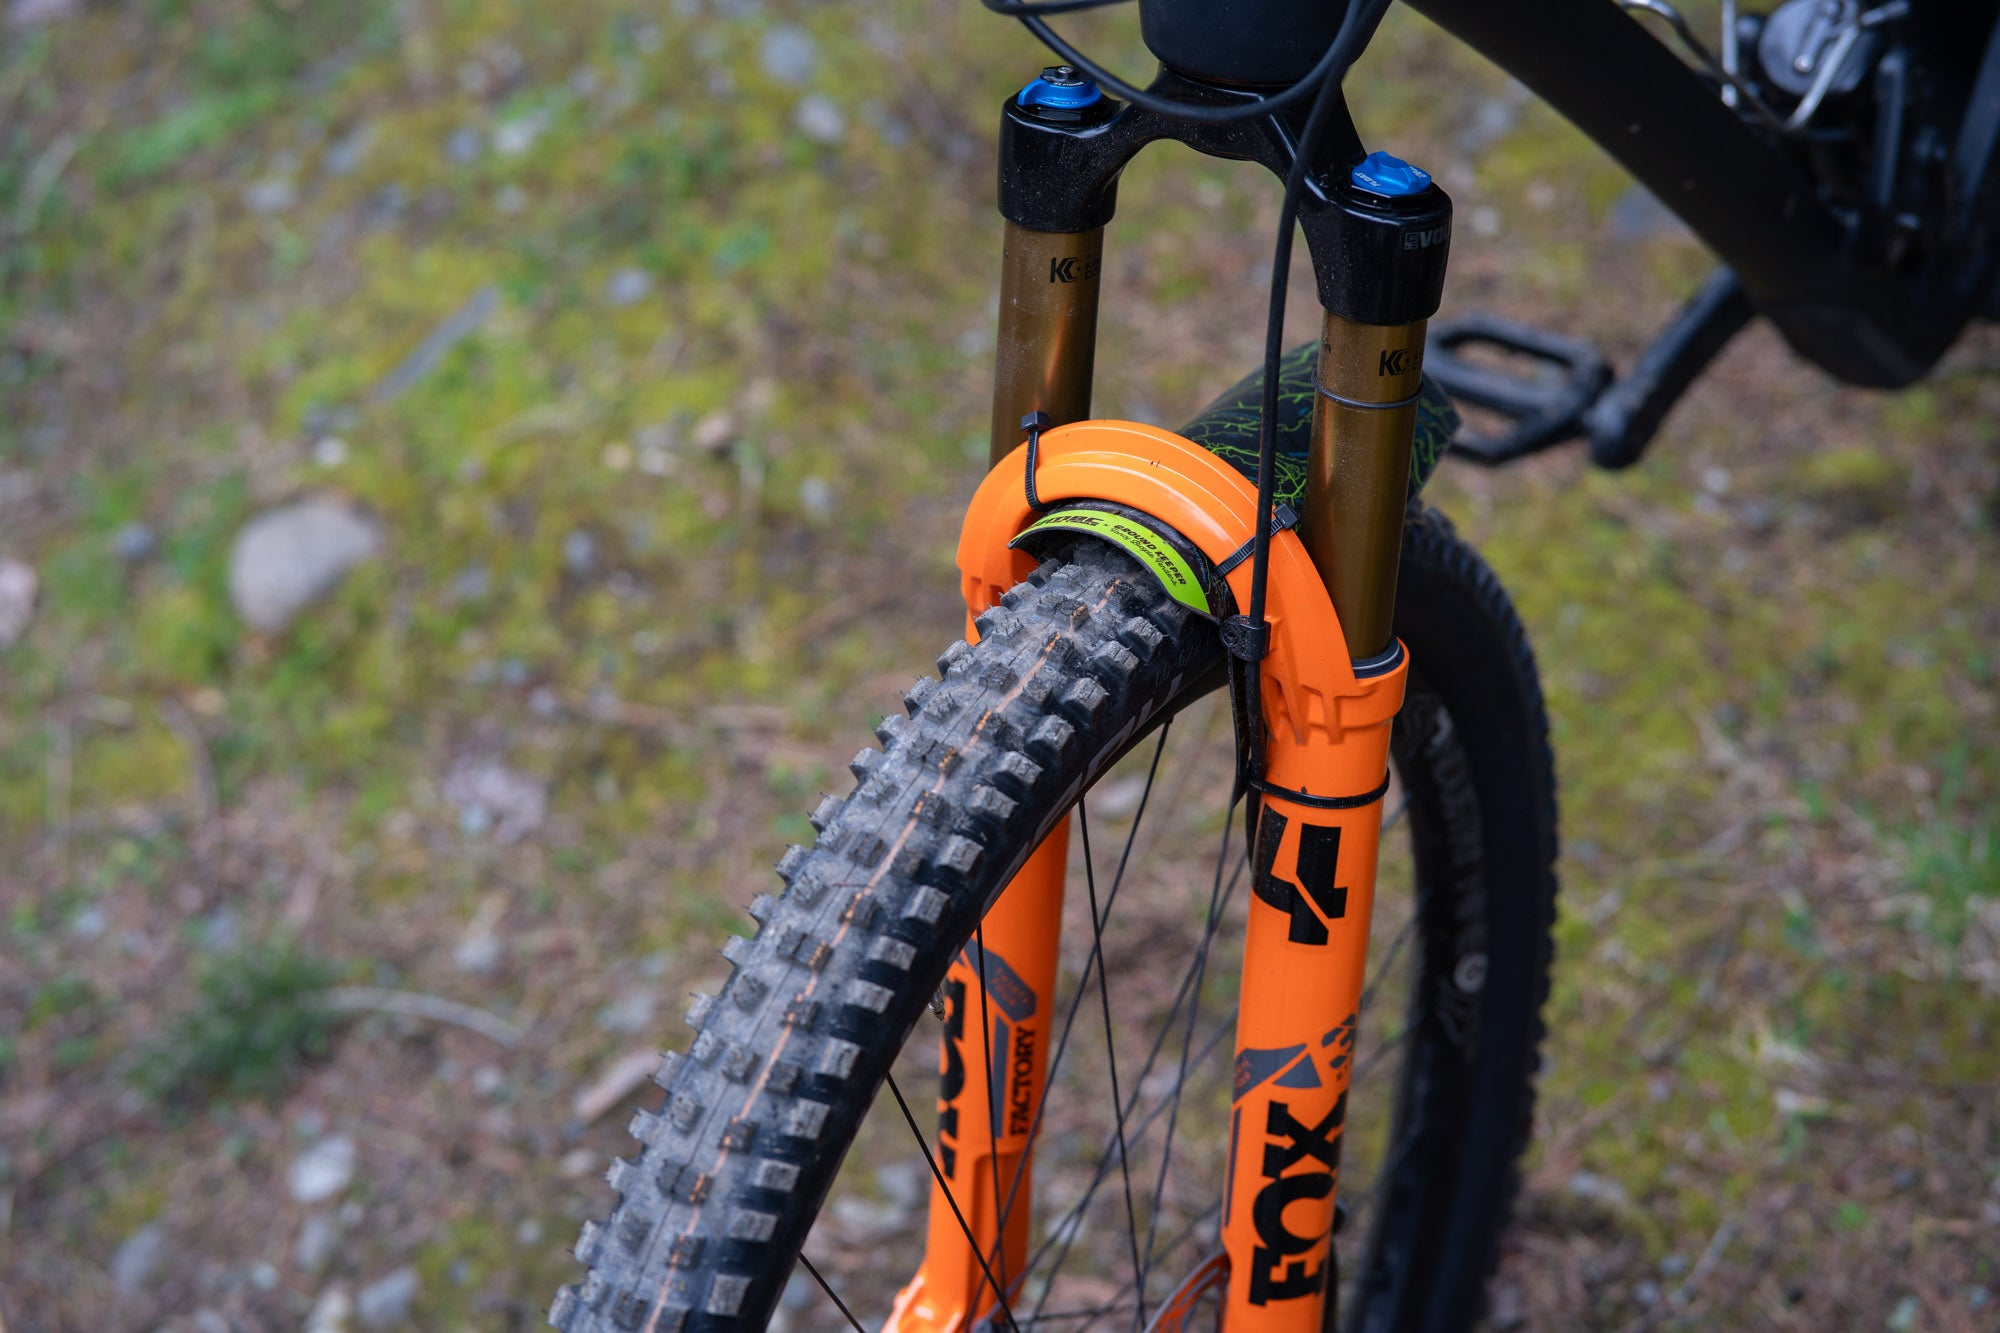 The new EVOL air spring and the FIT4 damper